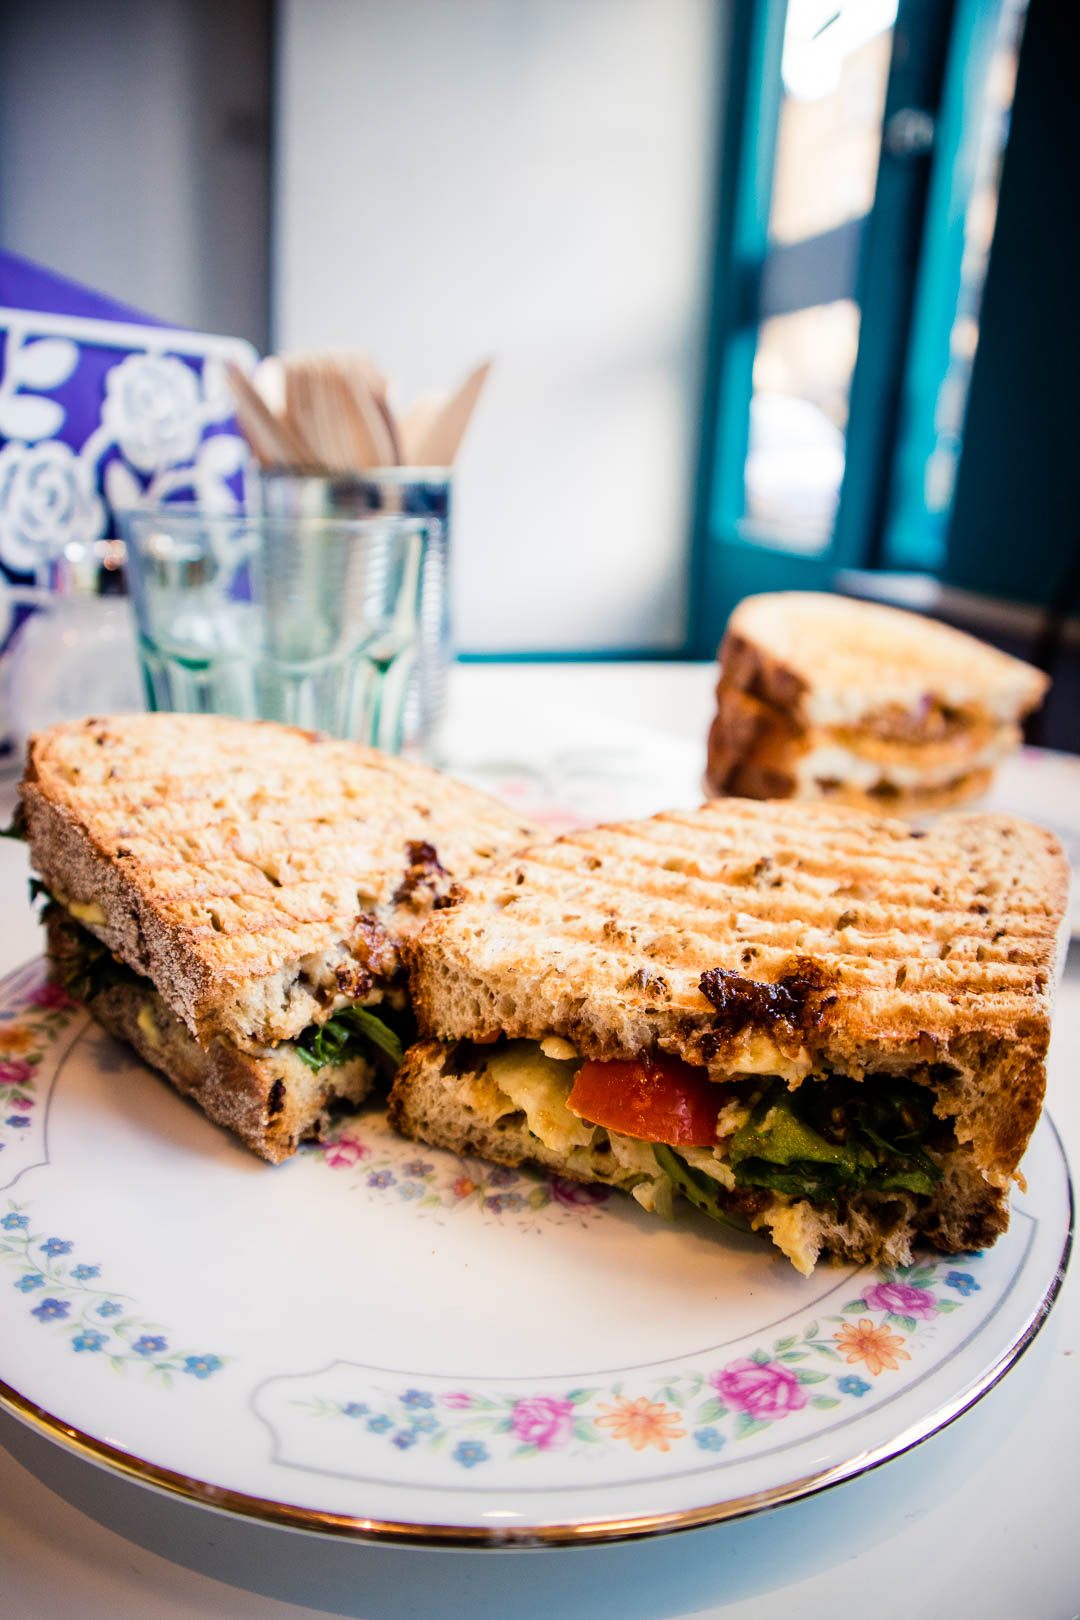 Polly's Ploughman sandwich at In Bloom Glasgow - all sandwiches are names after Nirvana songs!